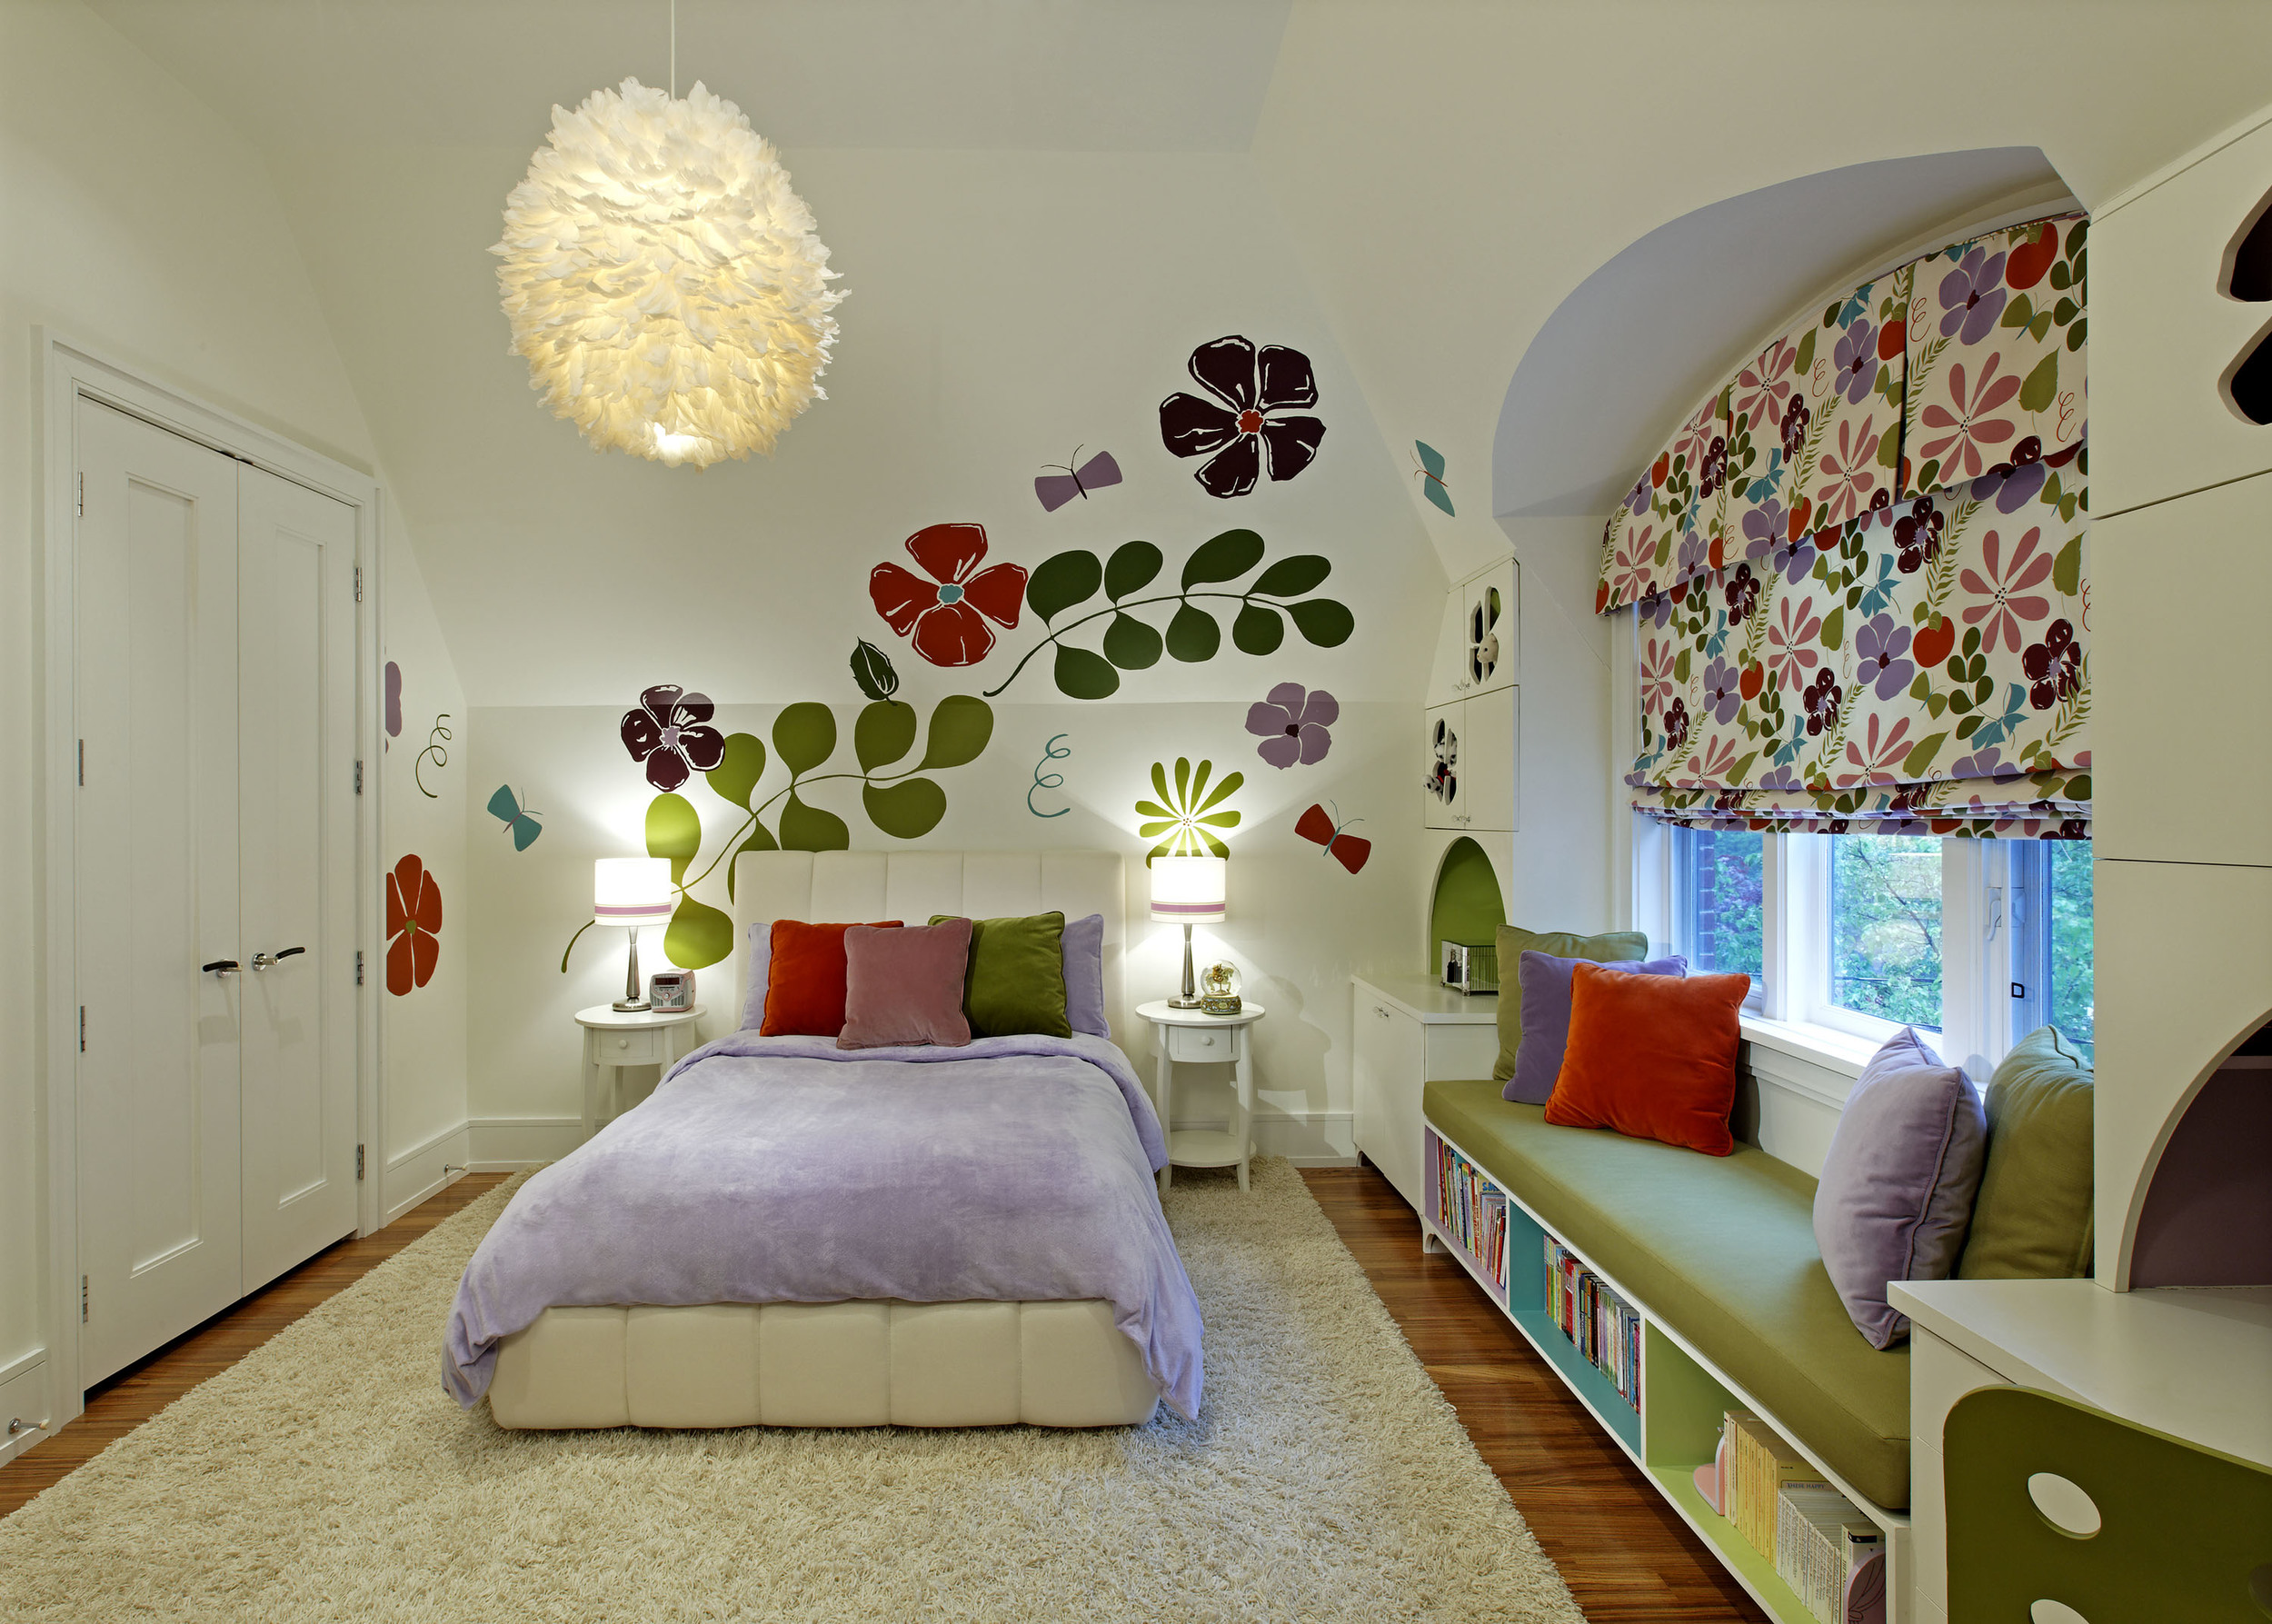 Within a traditionally styled house, a clean, open and contemporary interior responds to this young family's modern tastes. This 9 year-old girl's garden room employs bright colour, exuberant graphics, handy storage and an offbeat feathered pendant light fixture that will still appeal when she is 13.